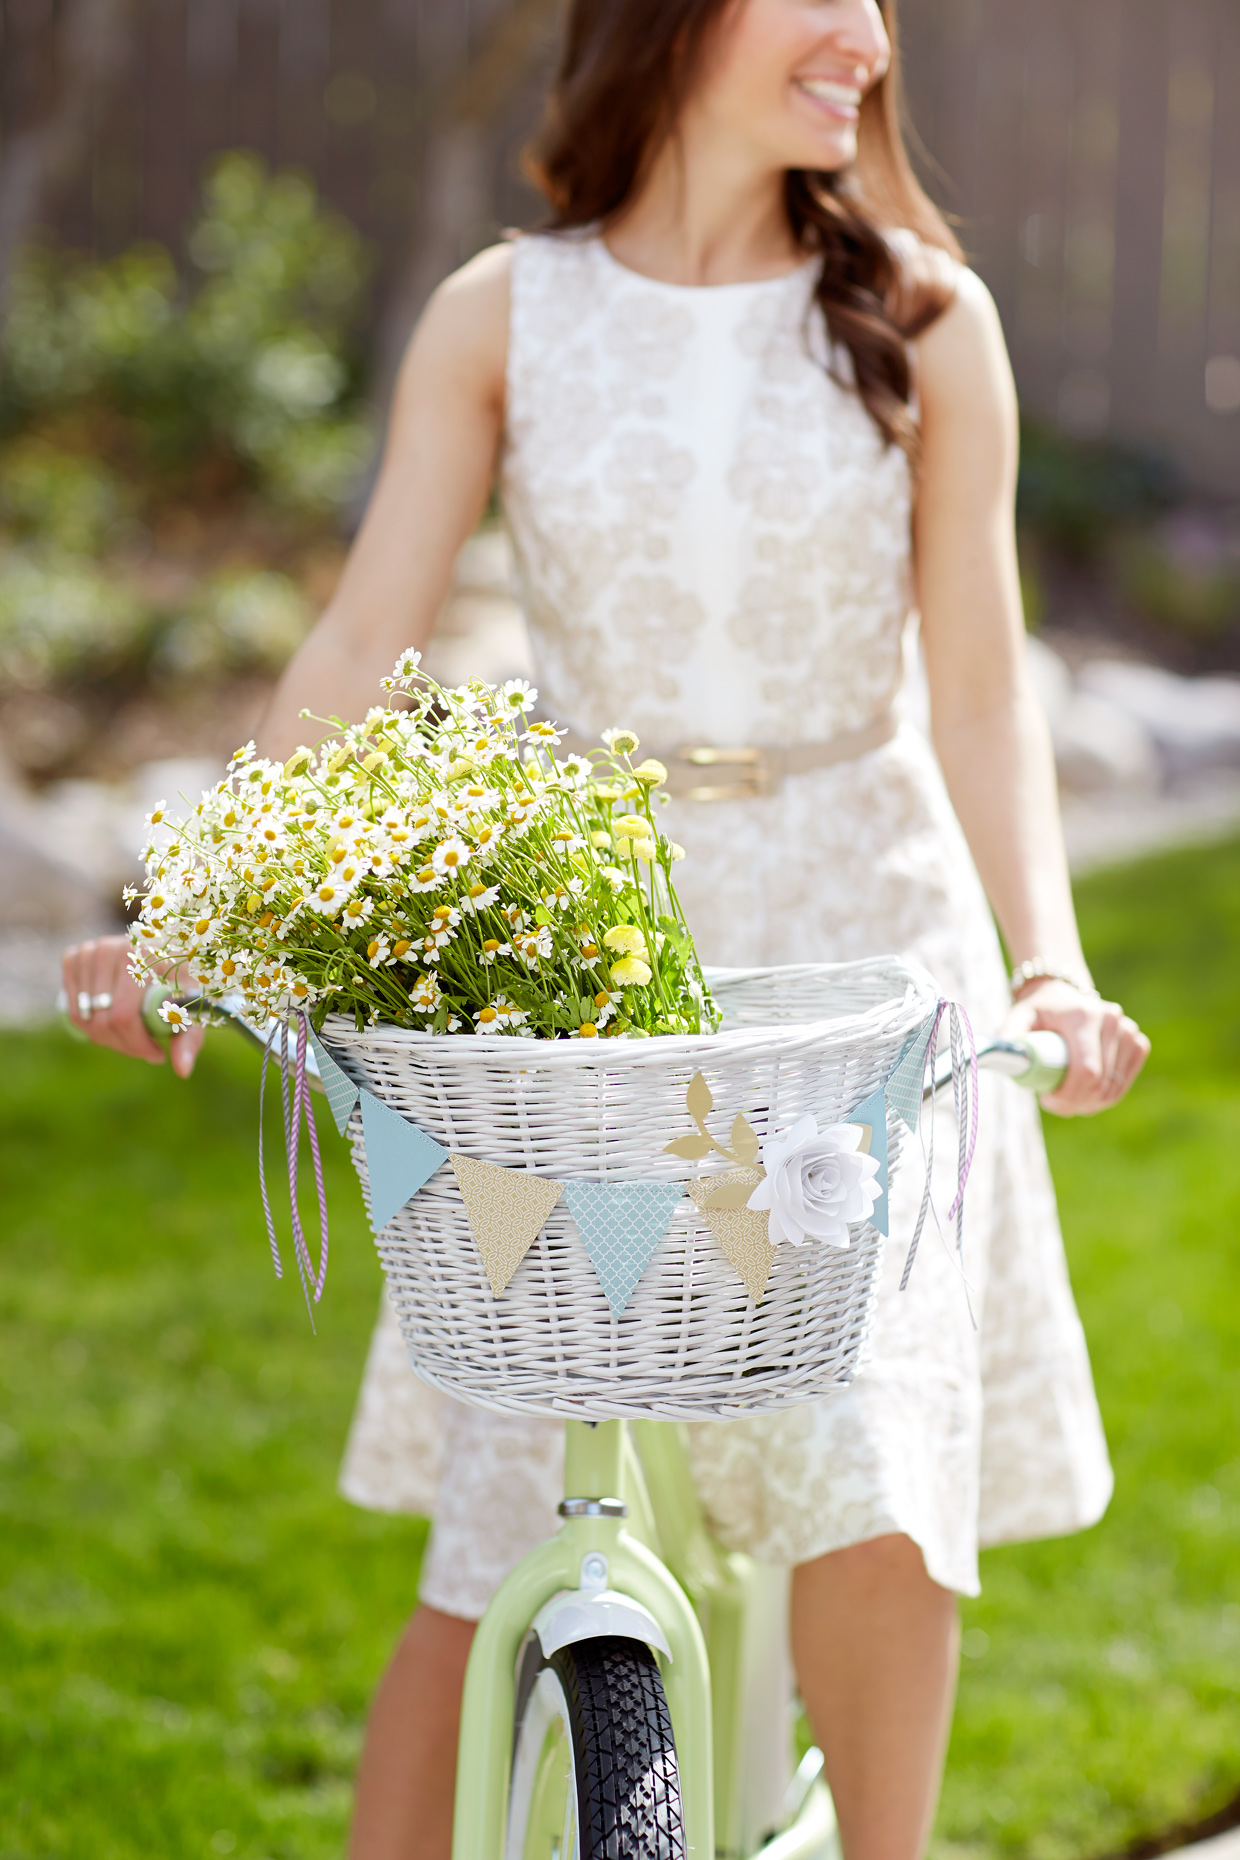 Lifestyle photography Derek Israelsen Flowers Basket